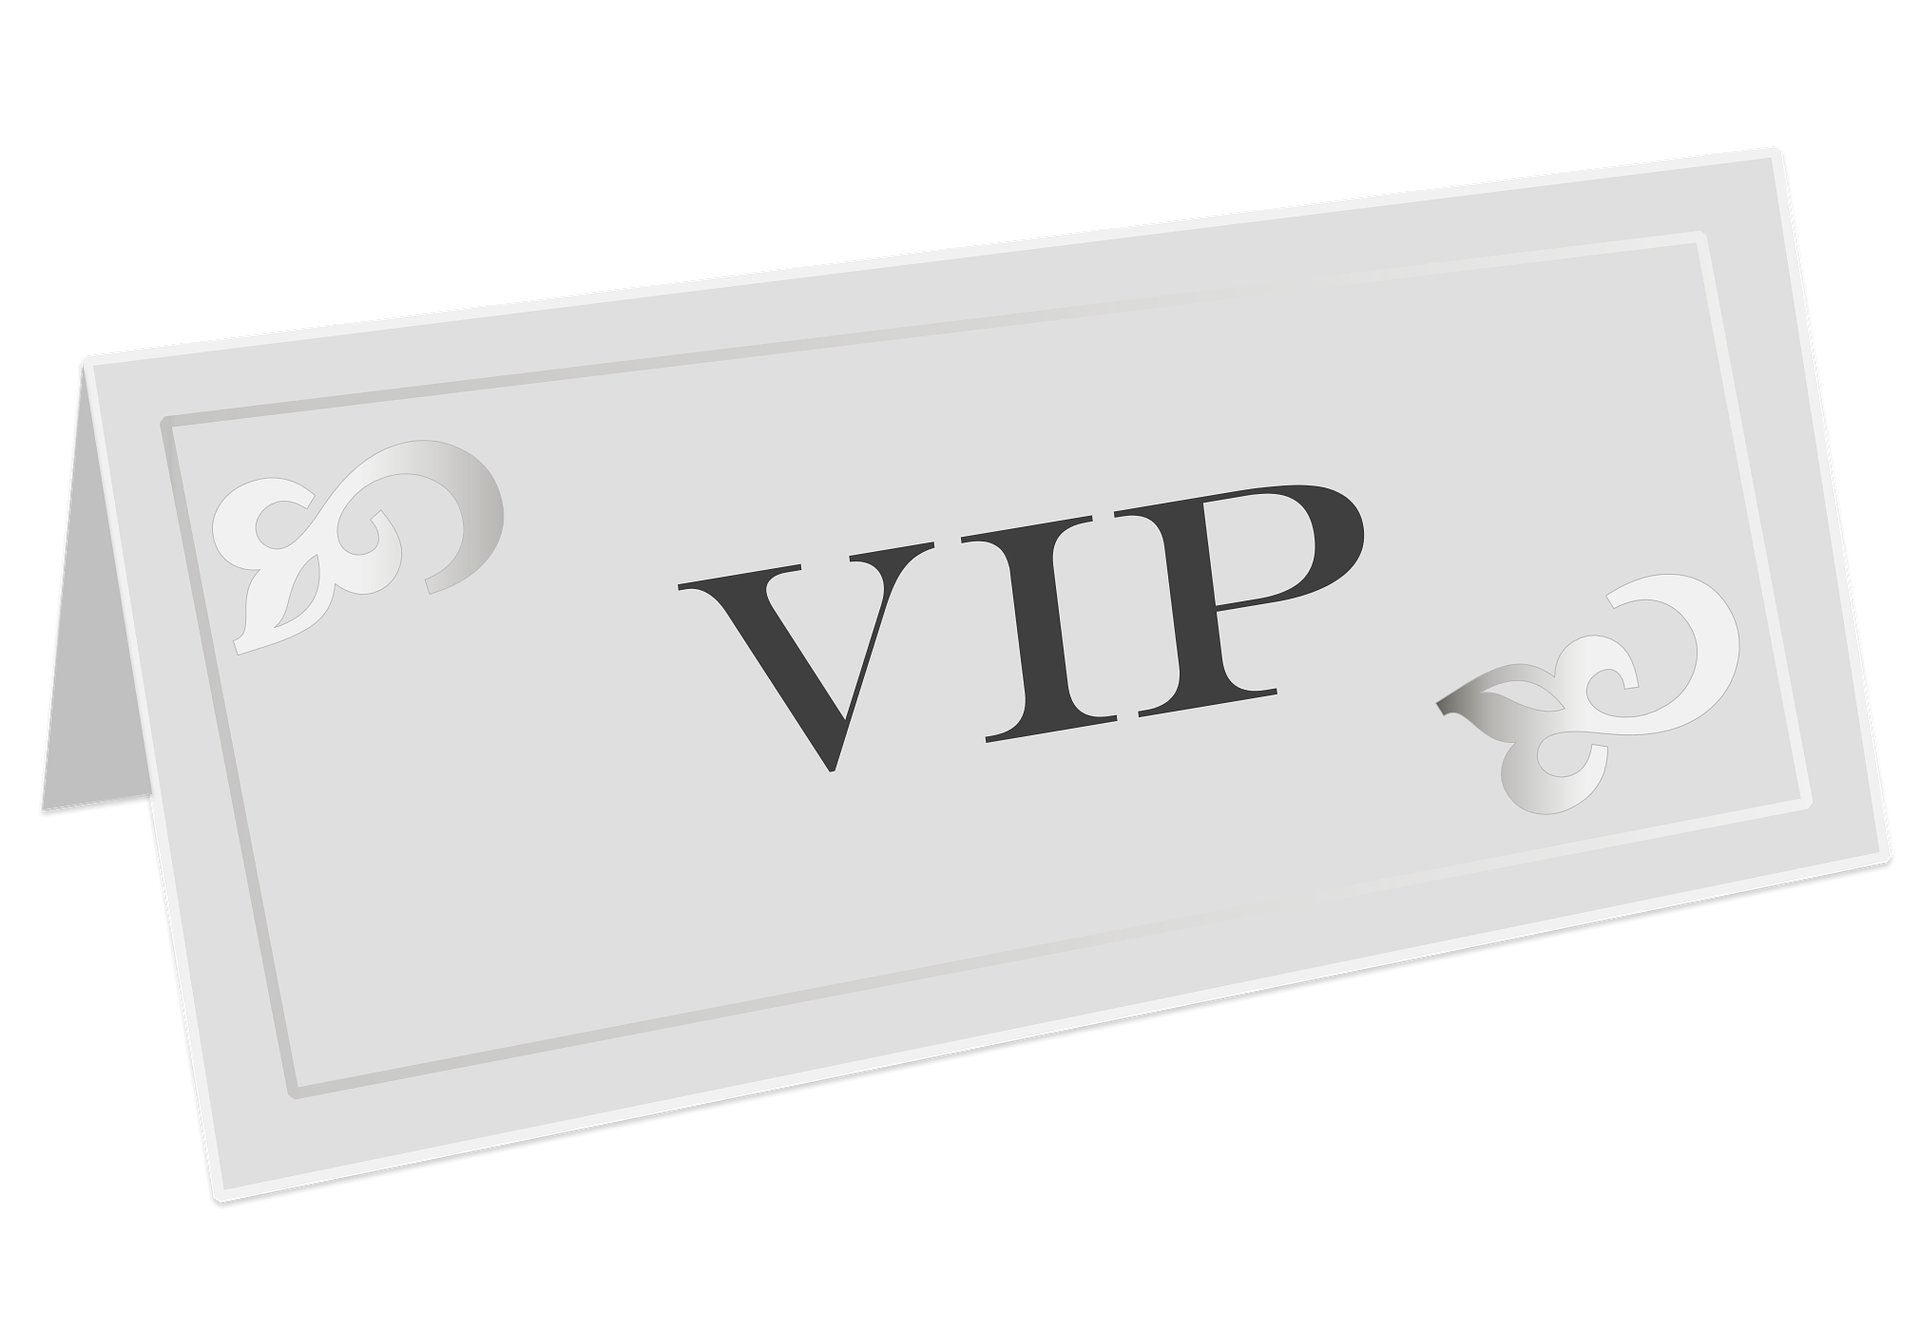 Grand Depart Nice Vip 2020 Vip Areas Tickets Tour De France Stage Nice